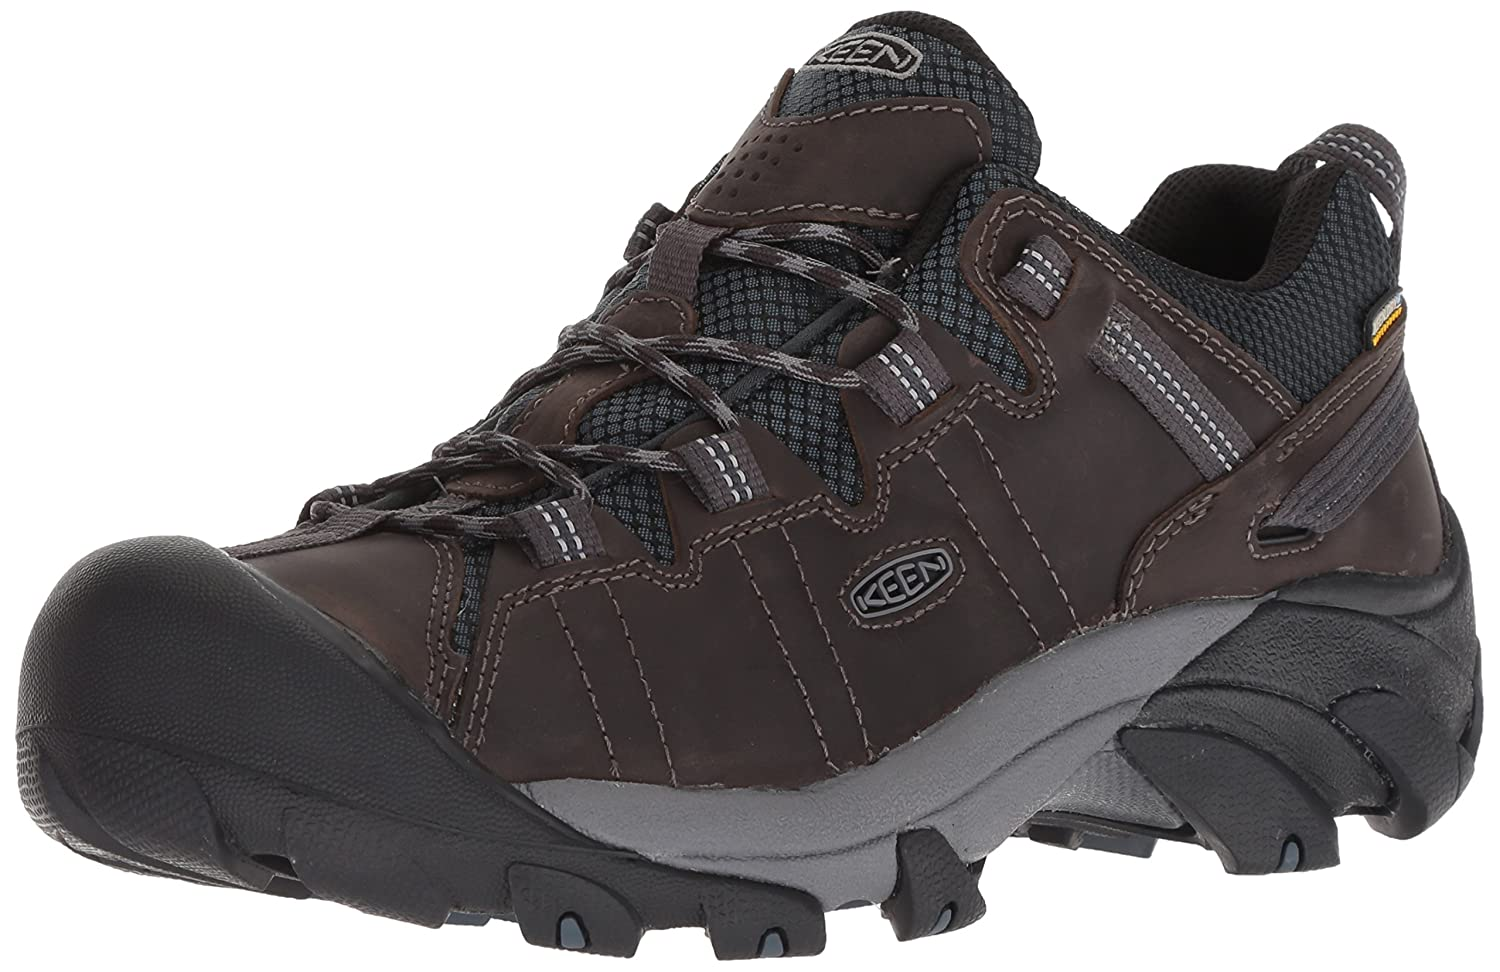 KEEN Men's Targhee Ii Waterproof Hiking Shoe 1019461